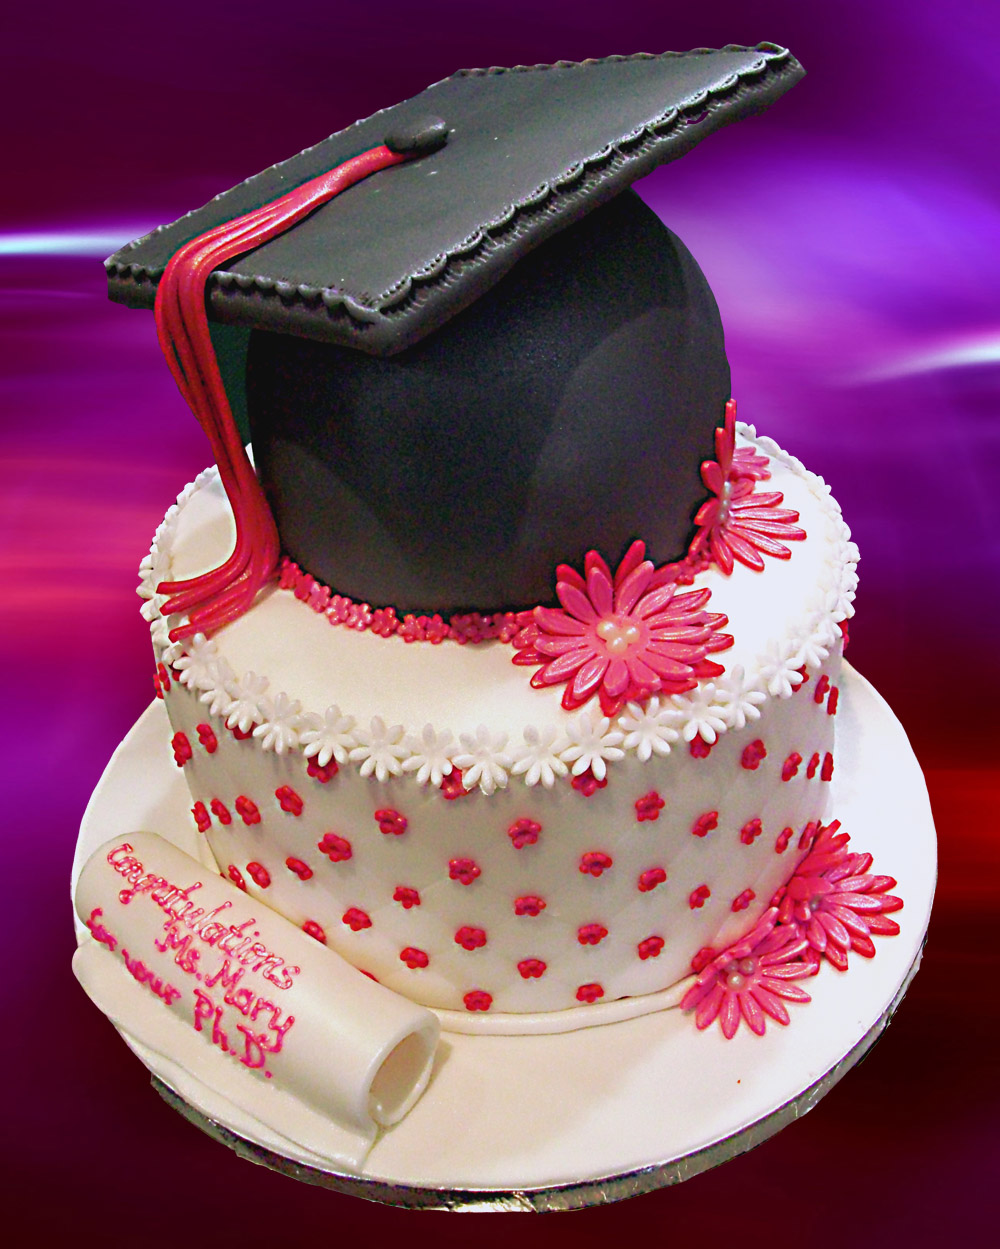 graduation cake decorating ideas graduation cake decorations